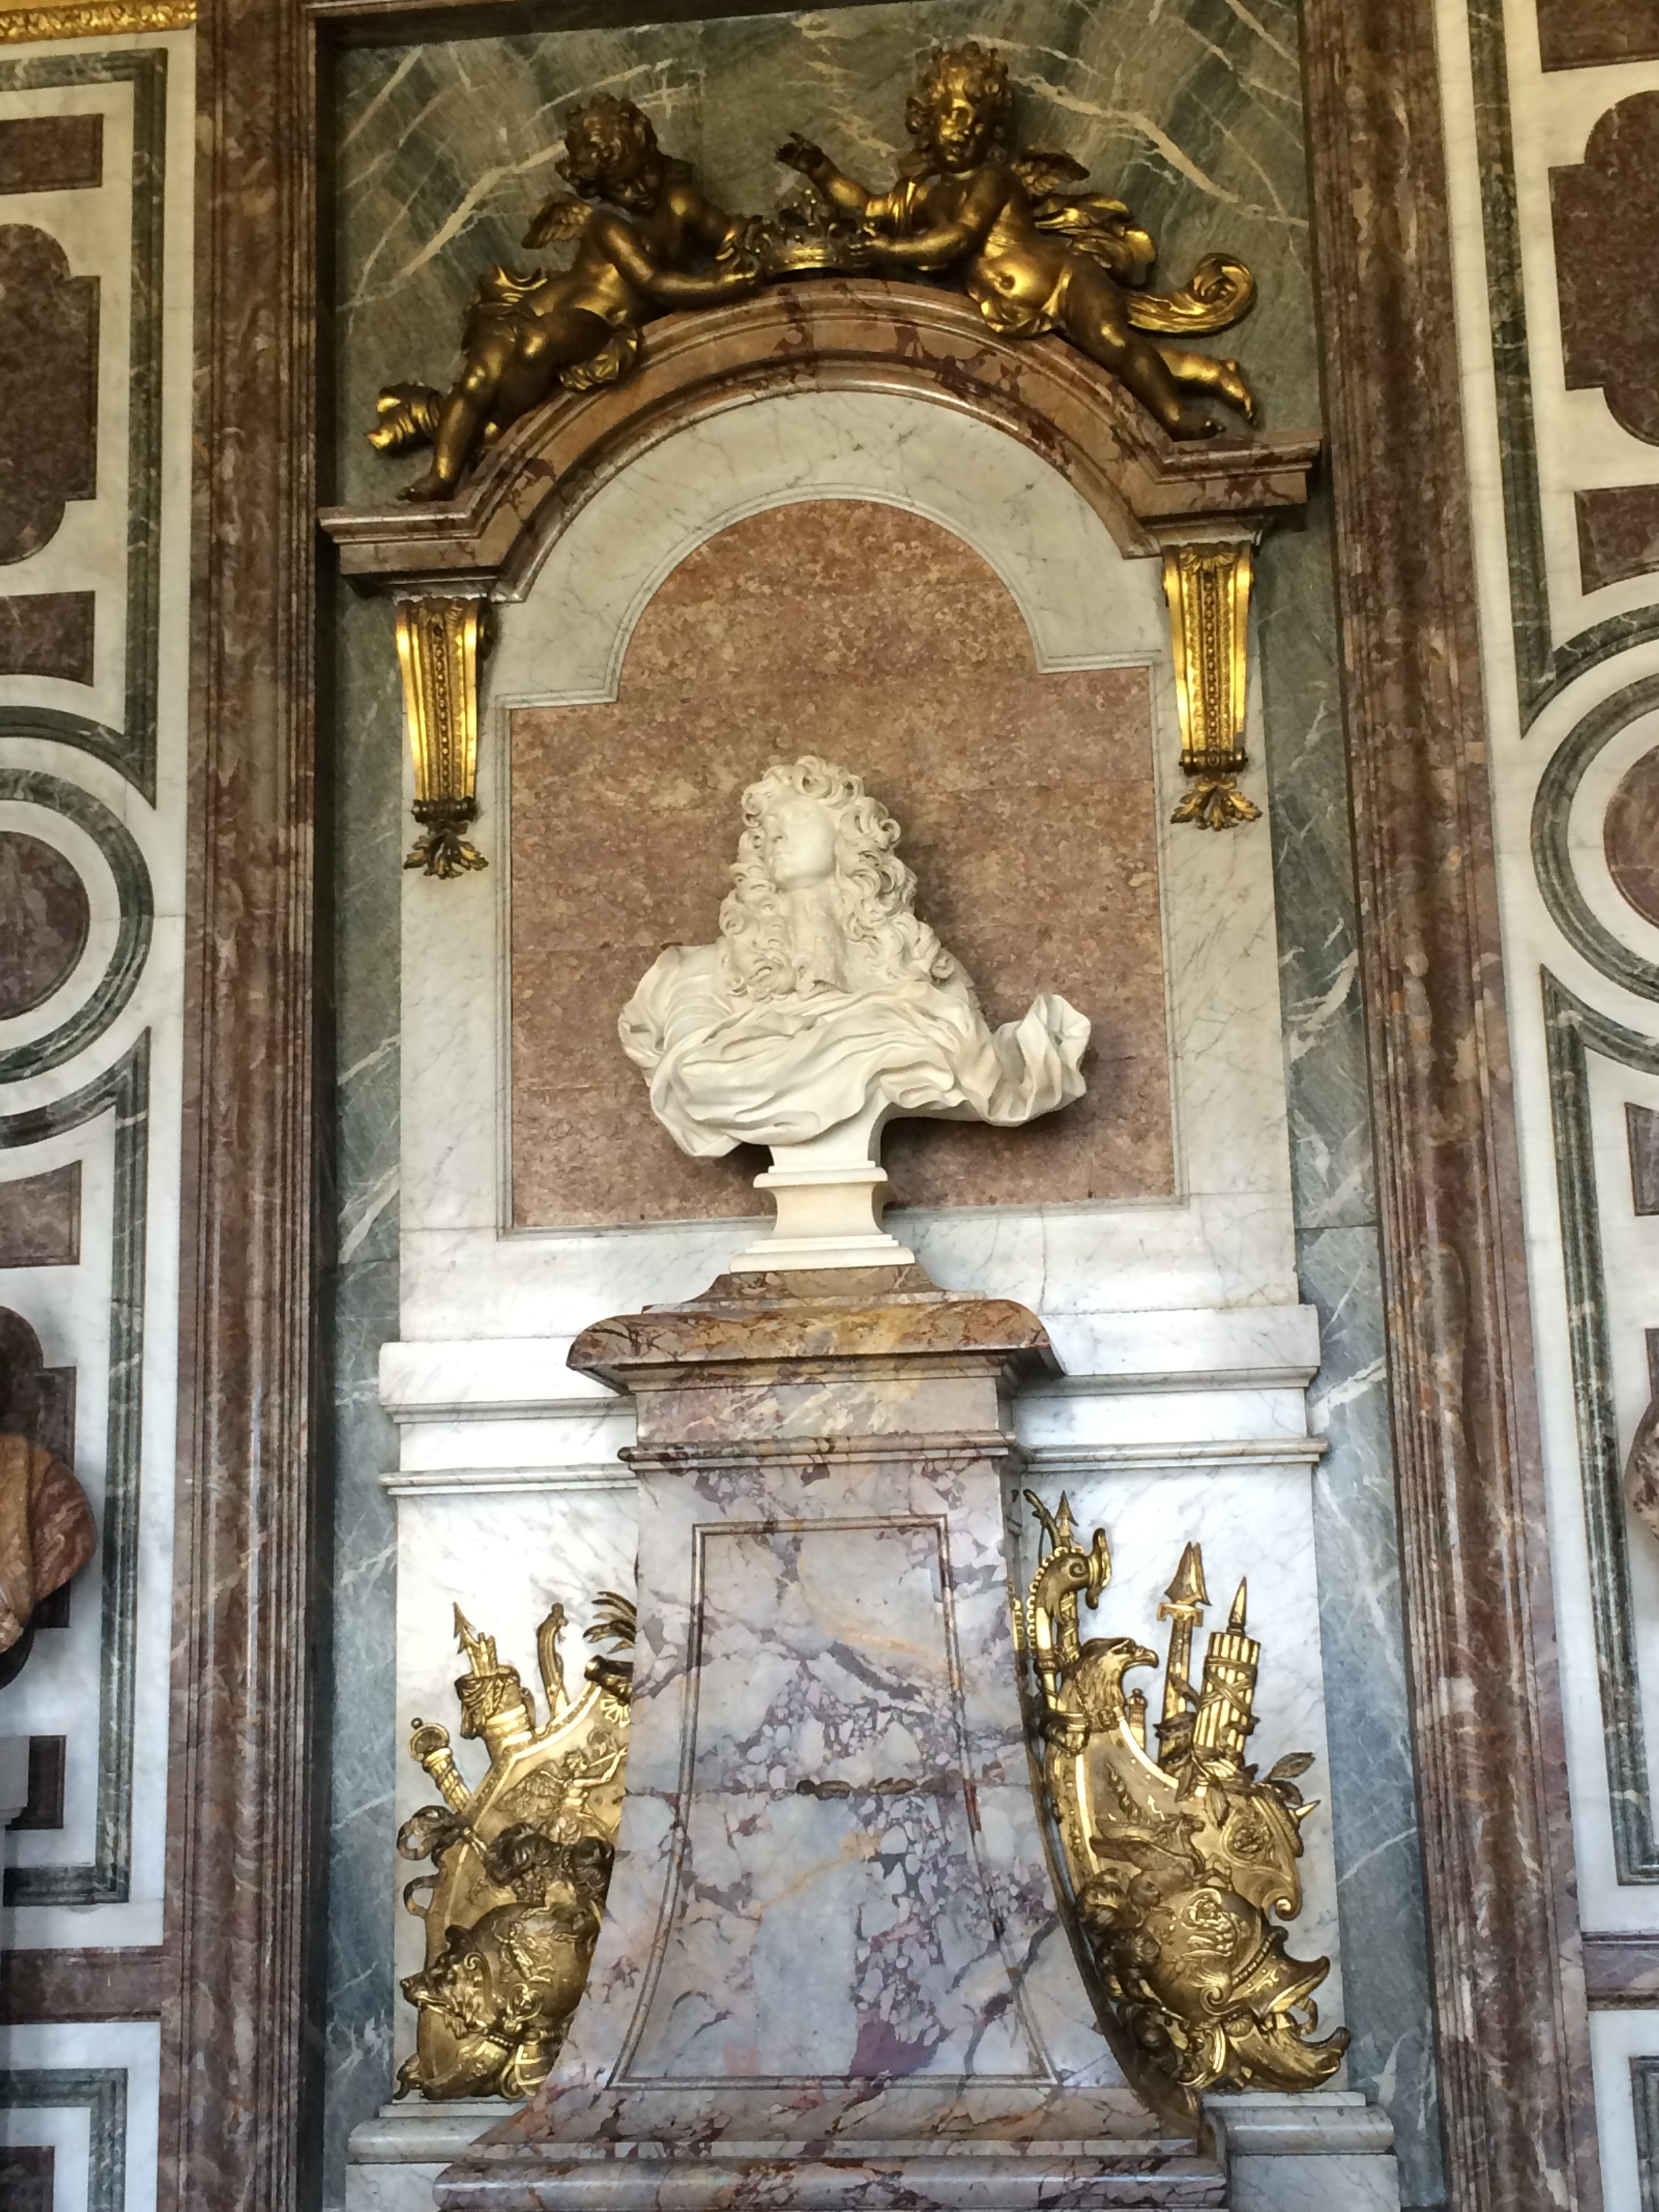 A classically-inspired white marble bust of Louis XIV, sitting on a colored marble pedestal, with gold armor, weapons, and animals protecting him at the base while gold angels lower a gold grown onto his hair as it blows in triumphant, imaginary wind.